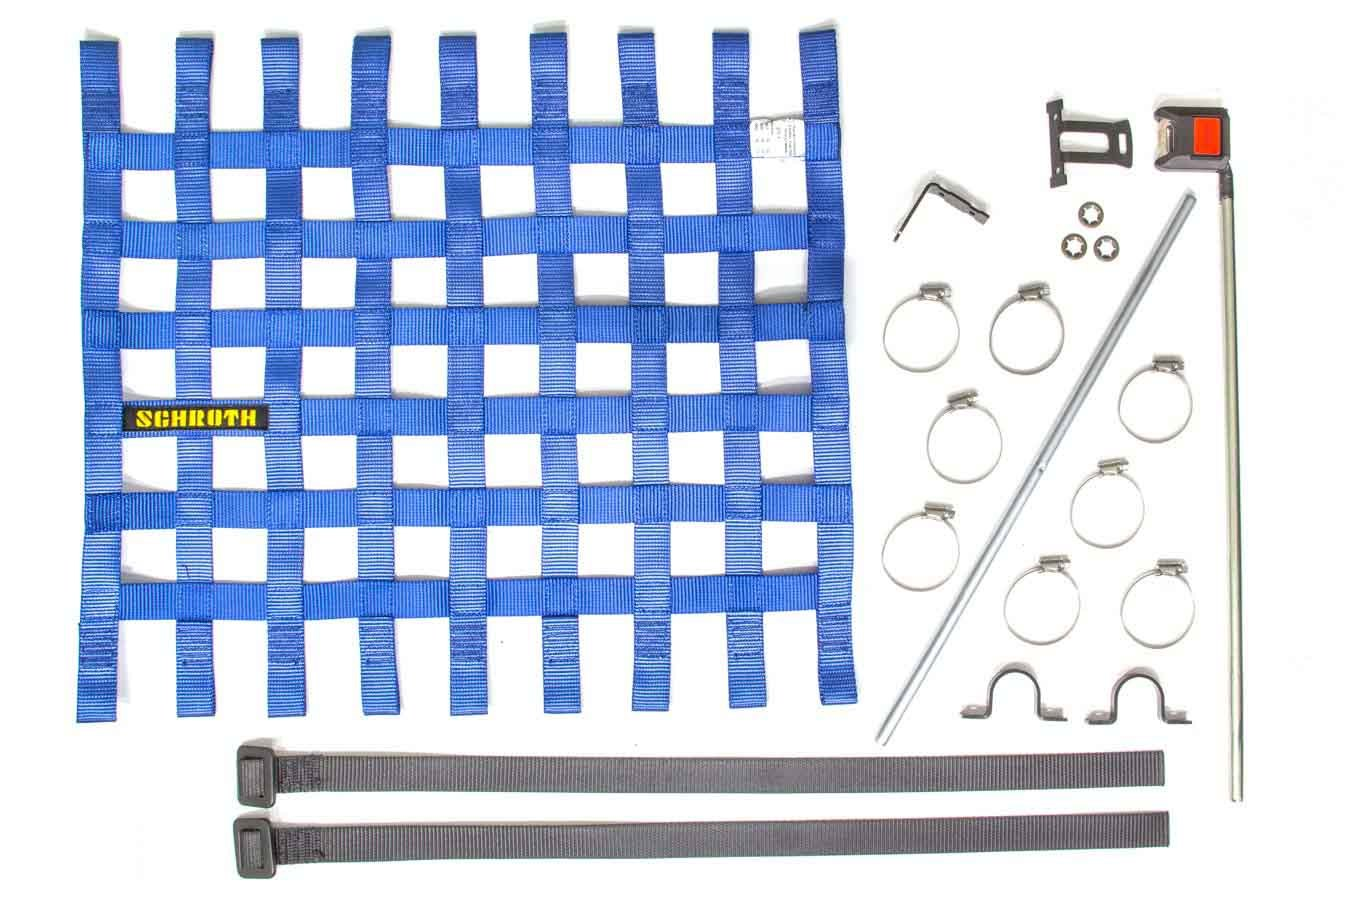 Schroth Racing SR09045-1 Window Net, SFI 27.1, FIA Approved, 1 in Webbing, 18-1/2 x 24 in Rectangle, Installation Hardware Included, Blue, Kit